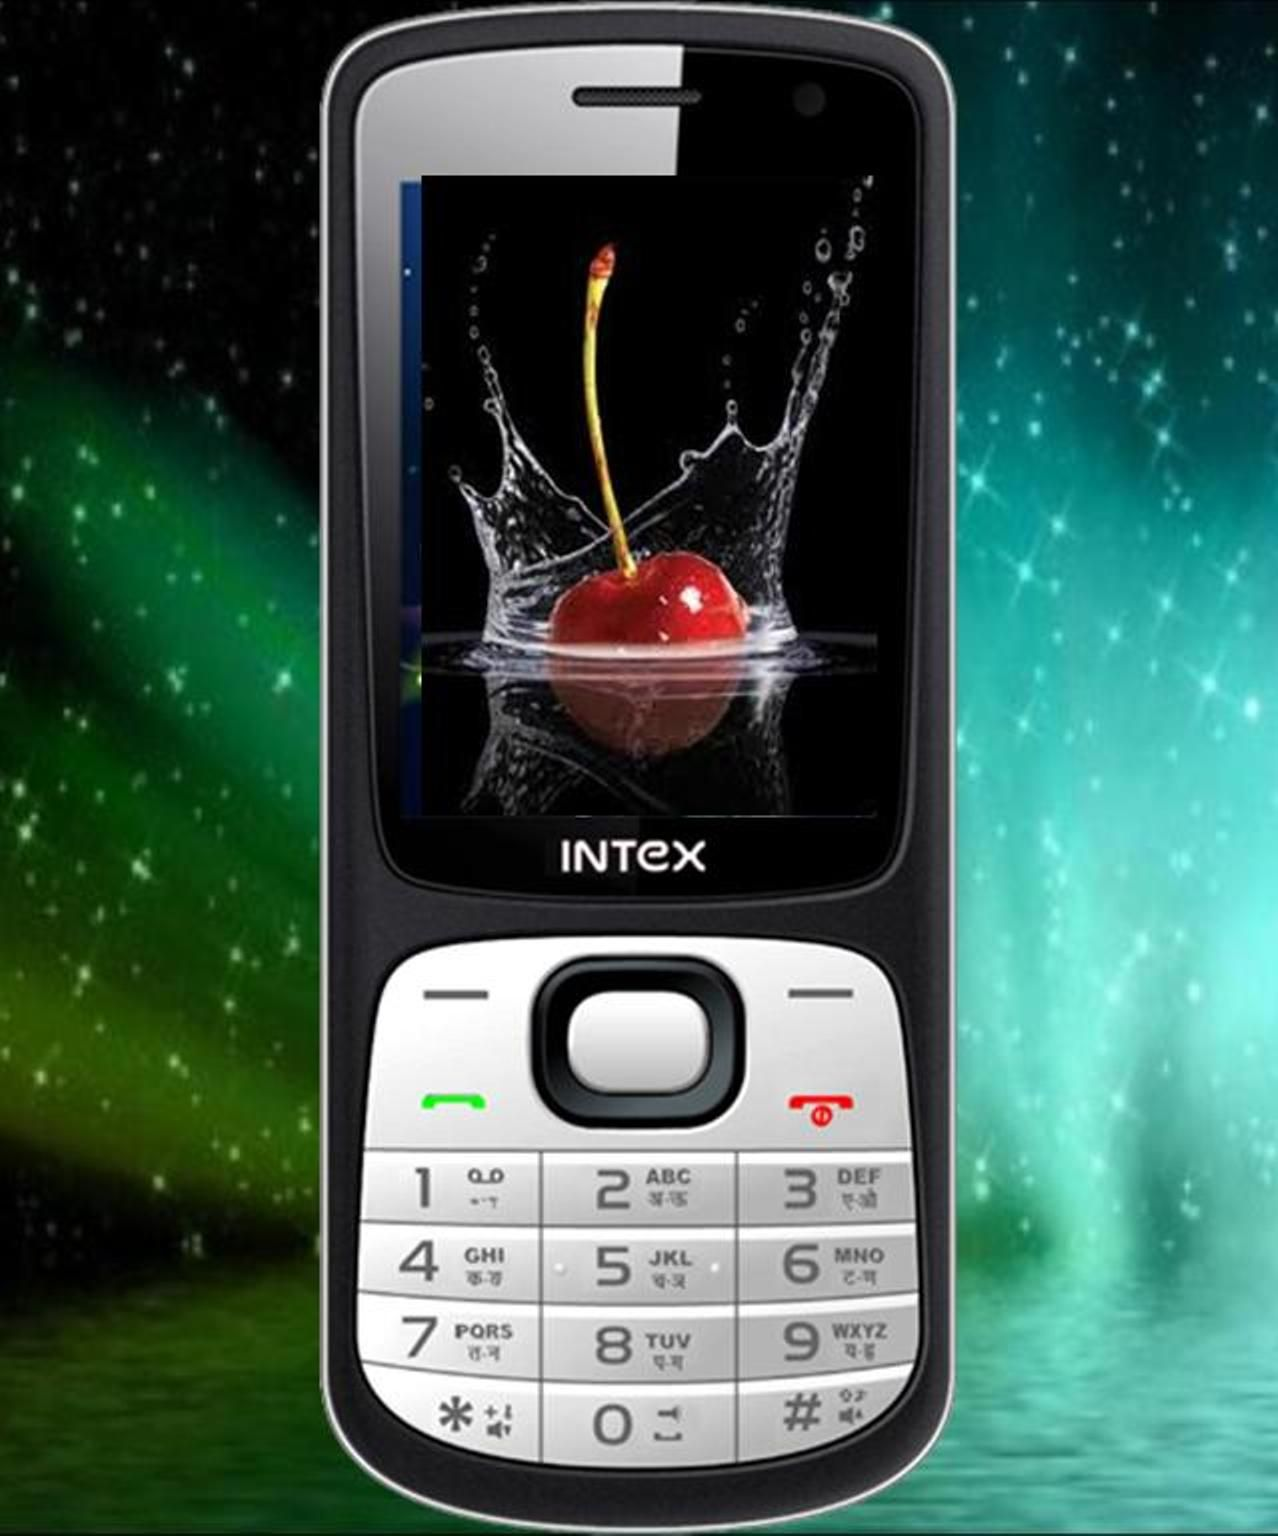 Intex Dual Sim Mobile WoW on 24x7mart with best rate and